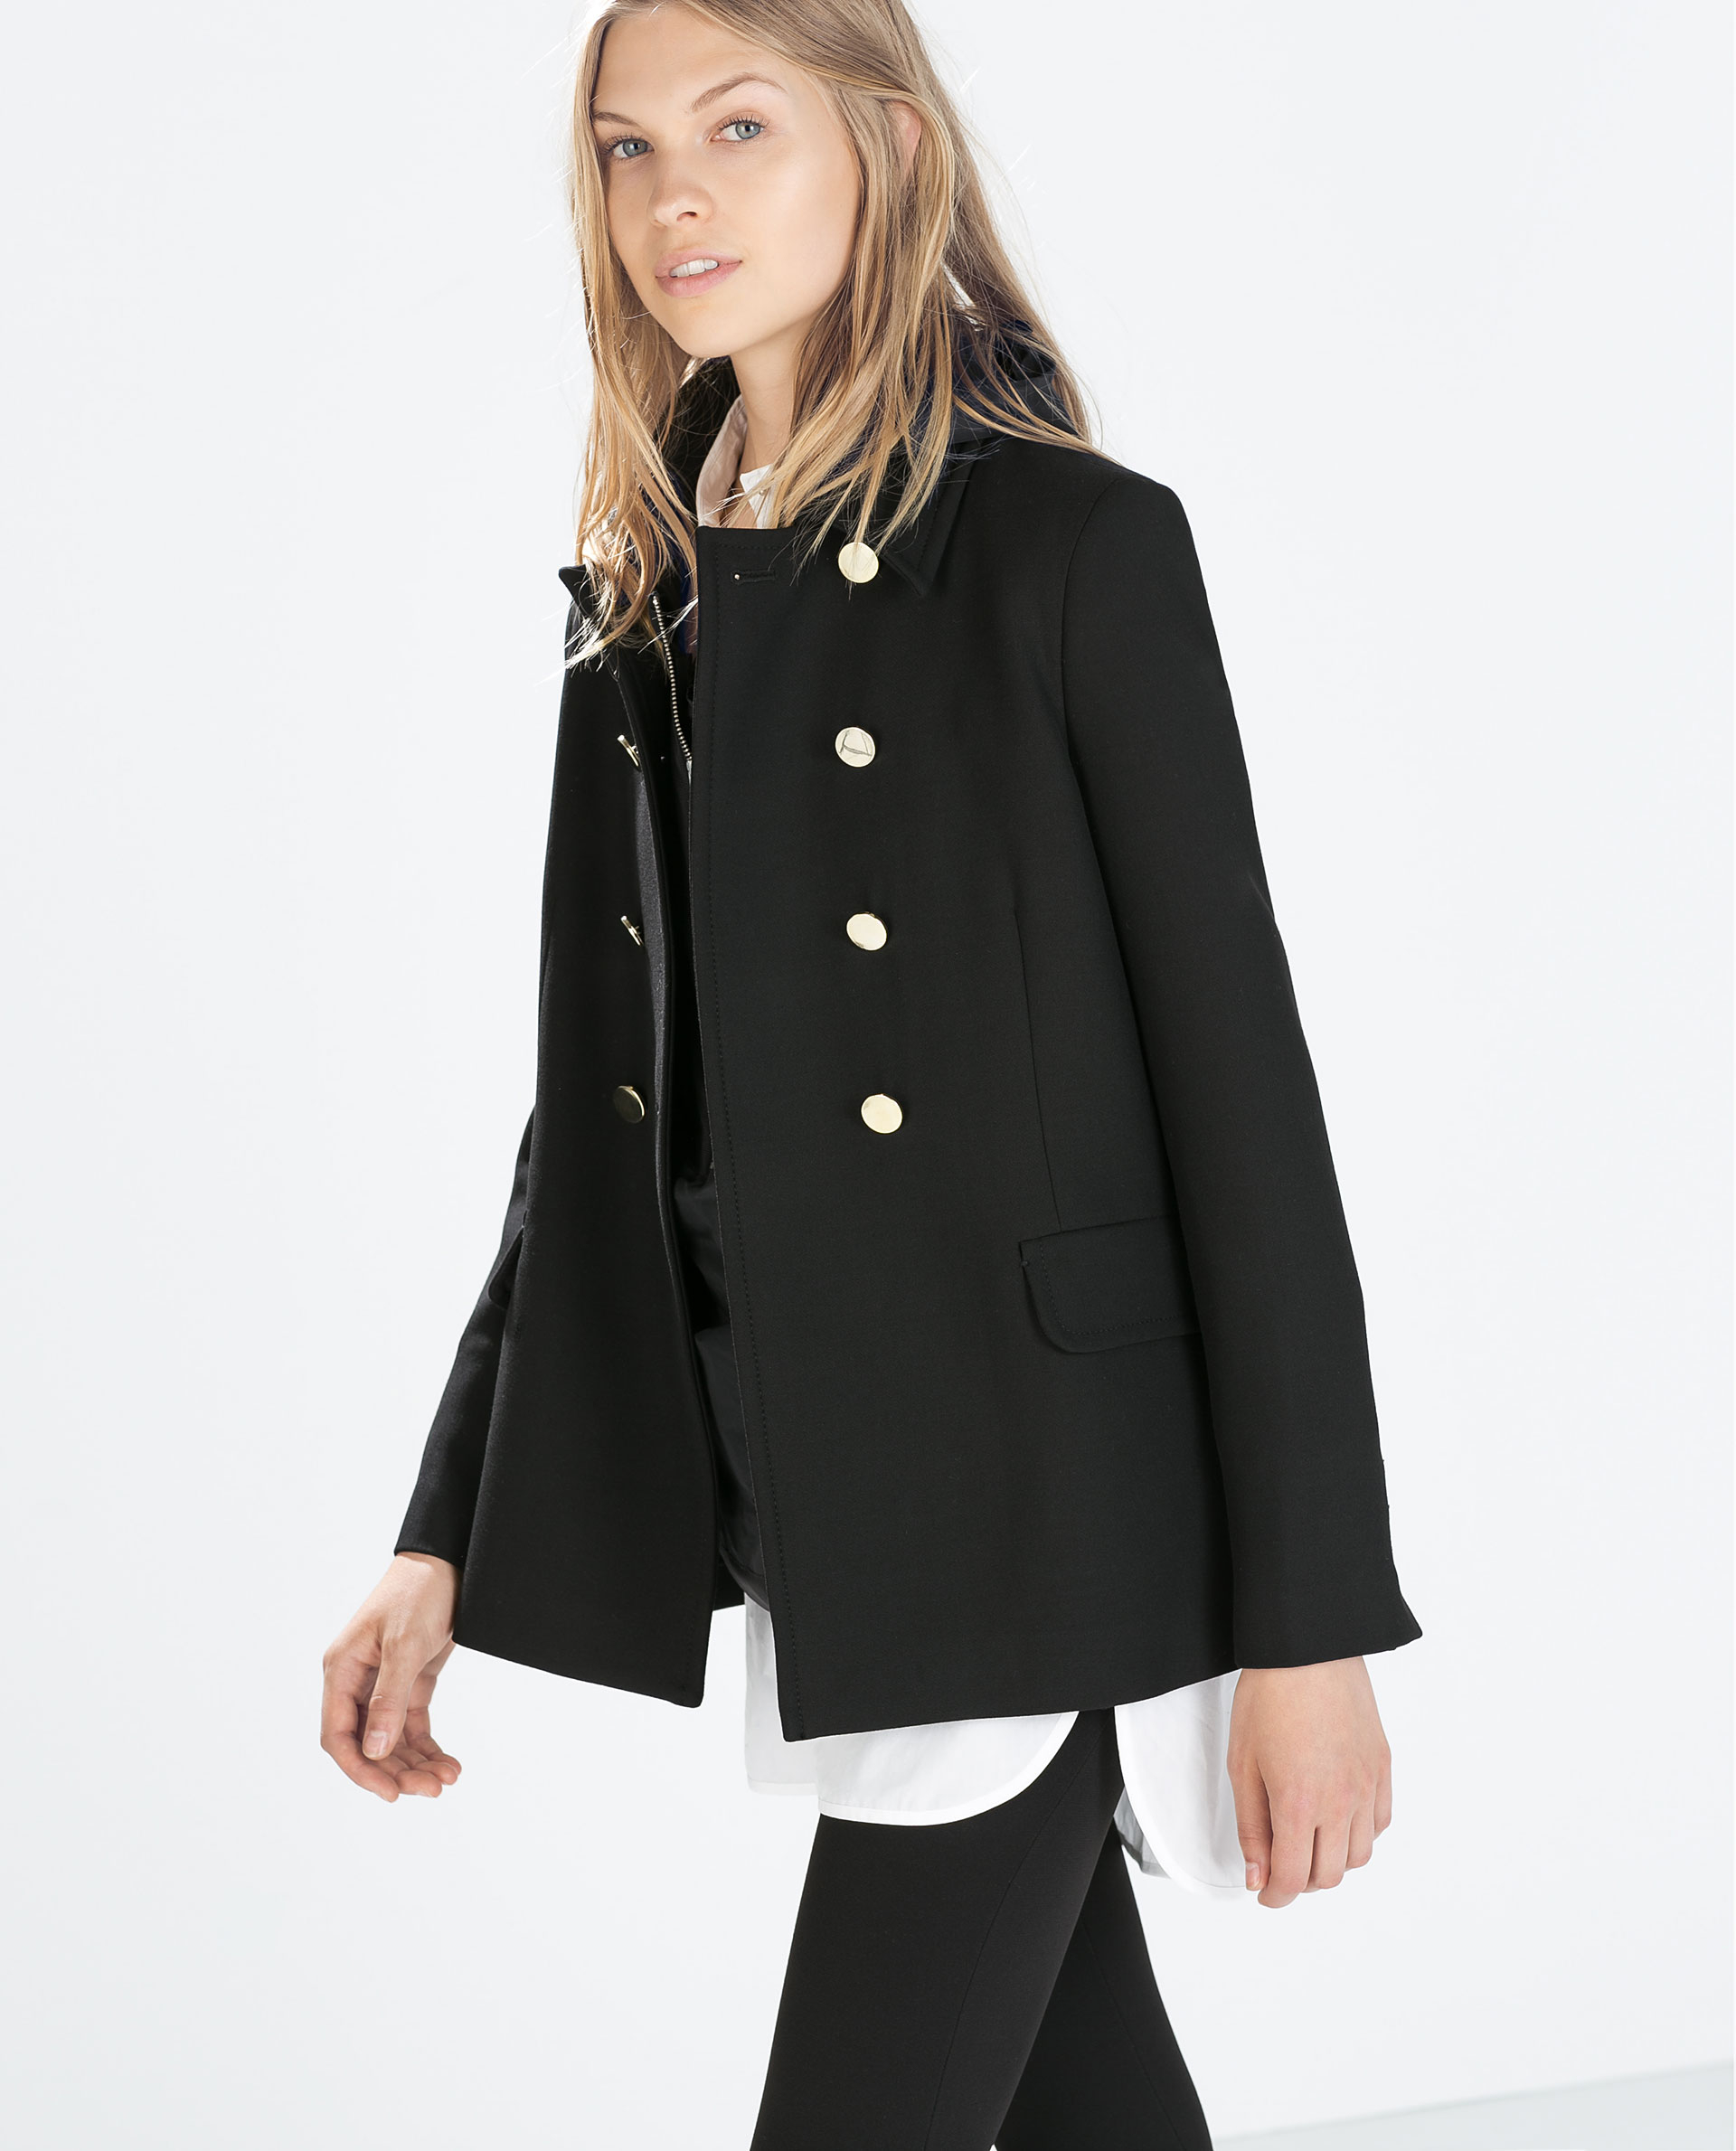 Zara Double-Breasted Short Coat in Black | Lyst